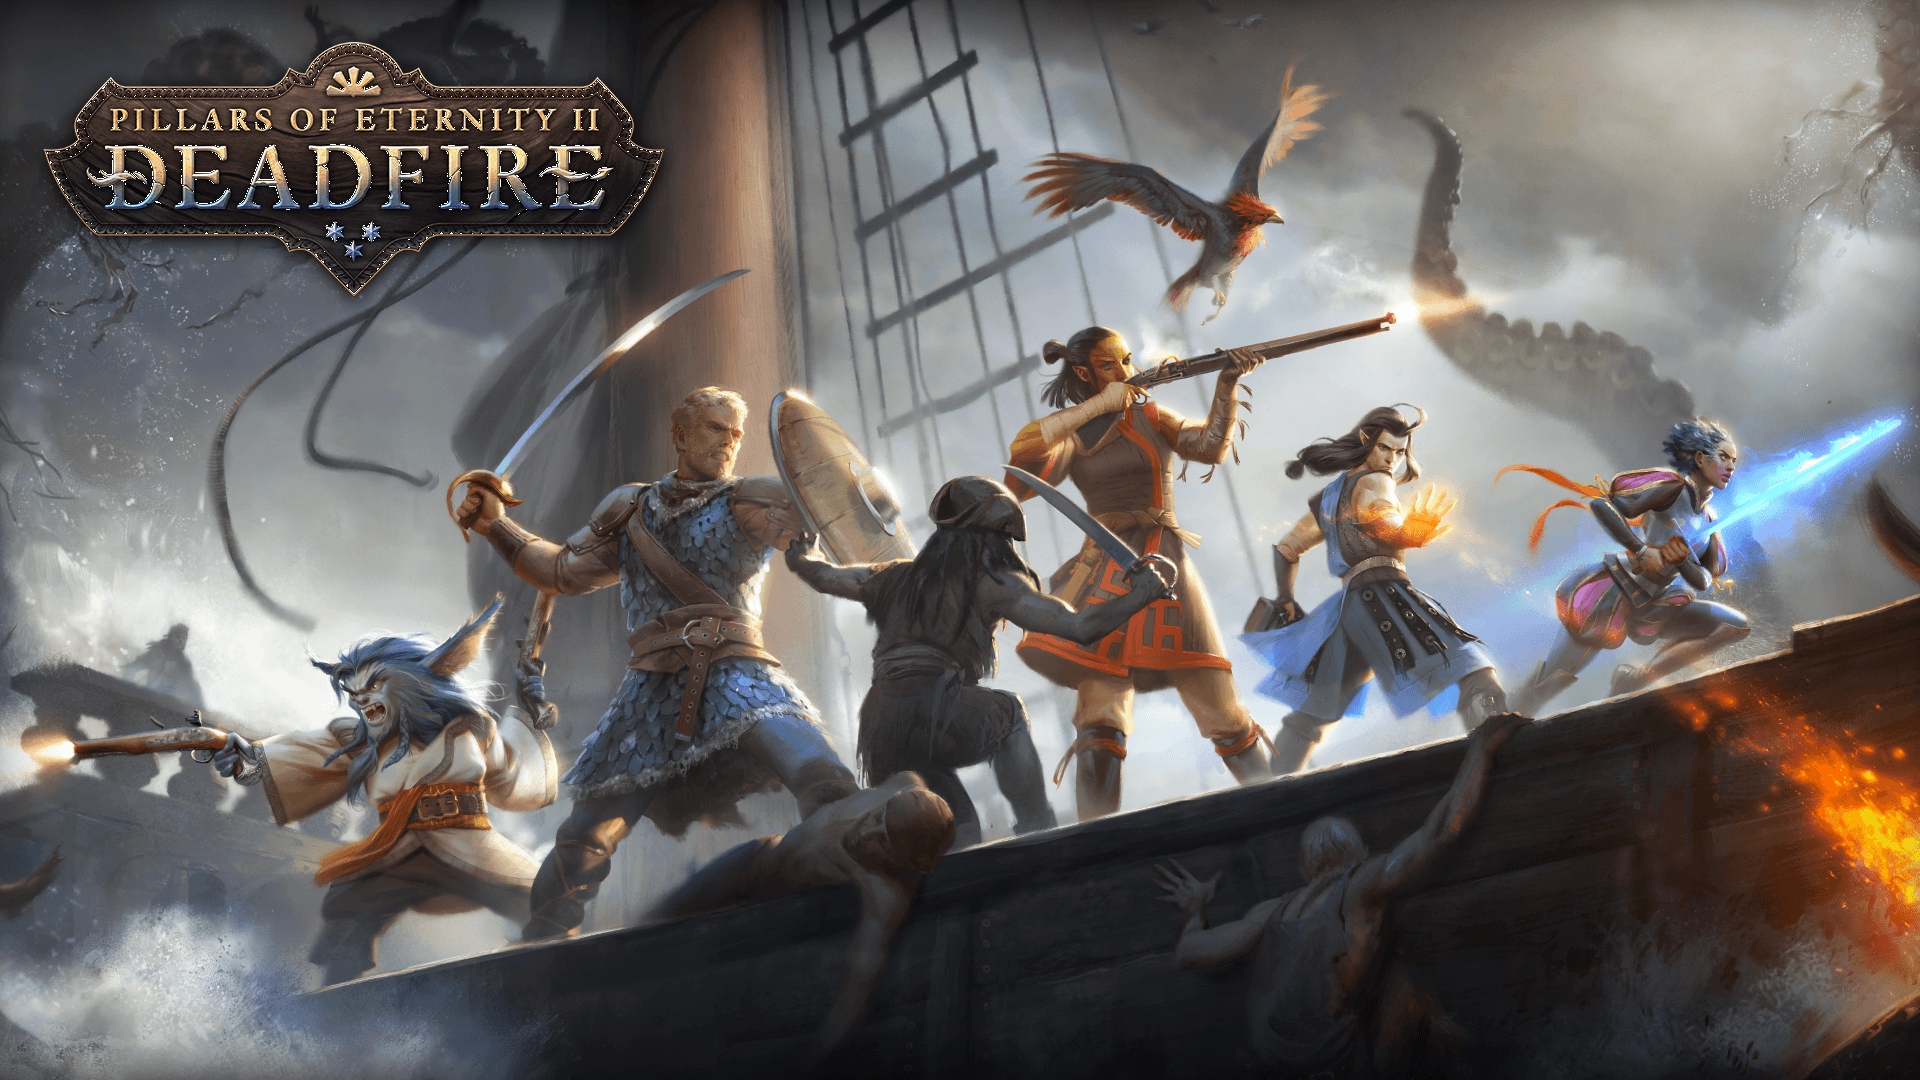 PILLARS OF ETERNITY II: DEADFIRE - In arrivo su Ps4 e Xbox One 10